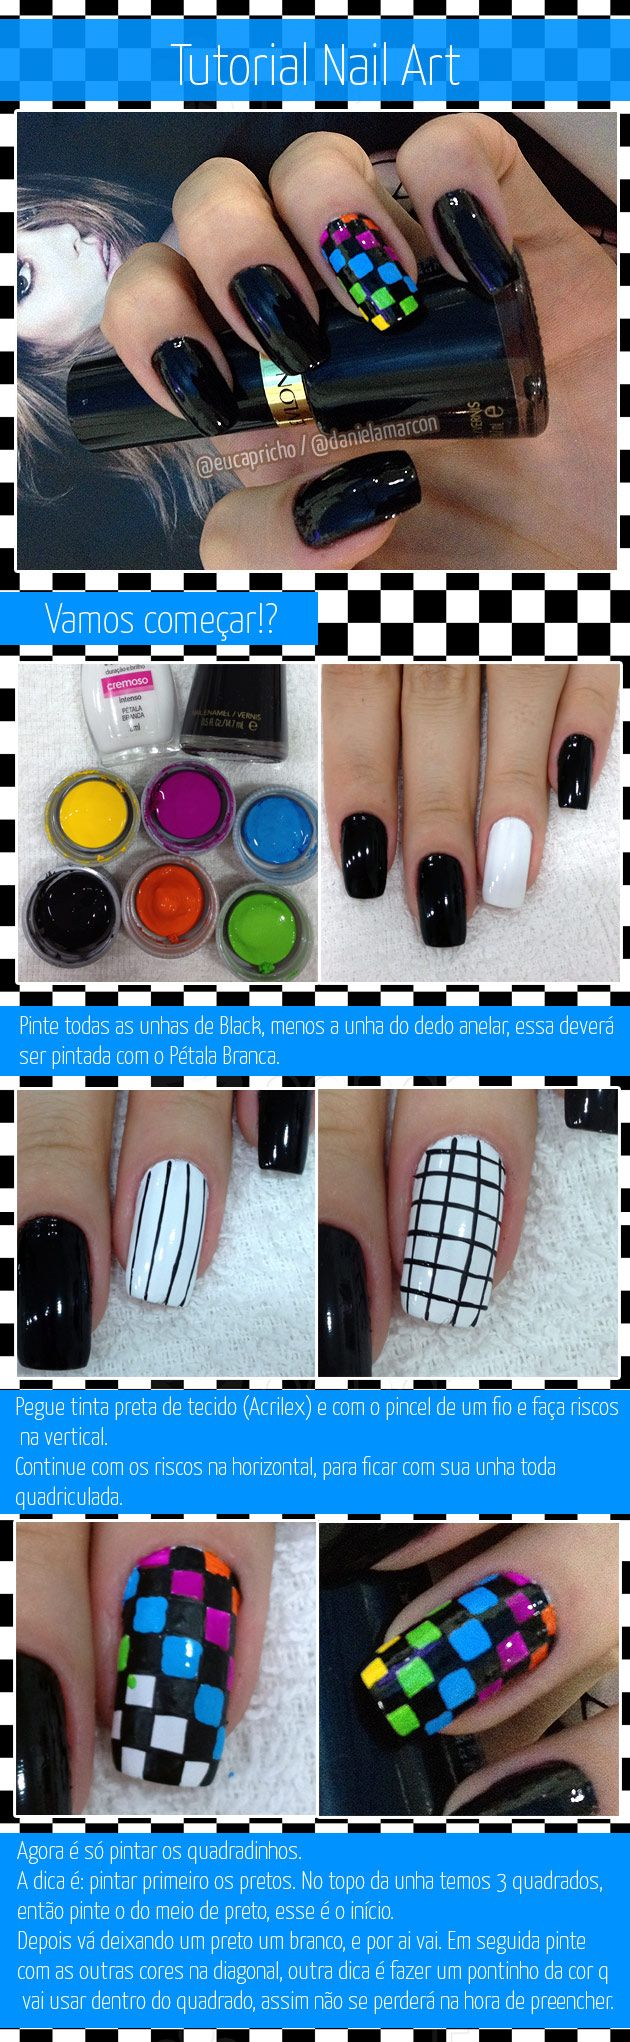 Tutorial de nail art / unha decorada quadriculada